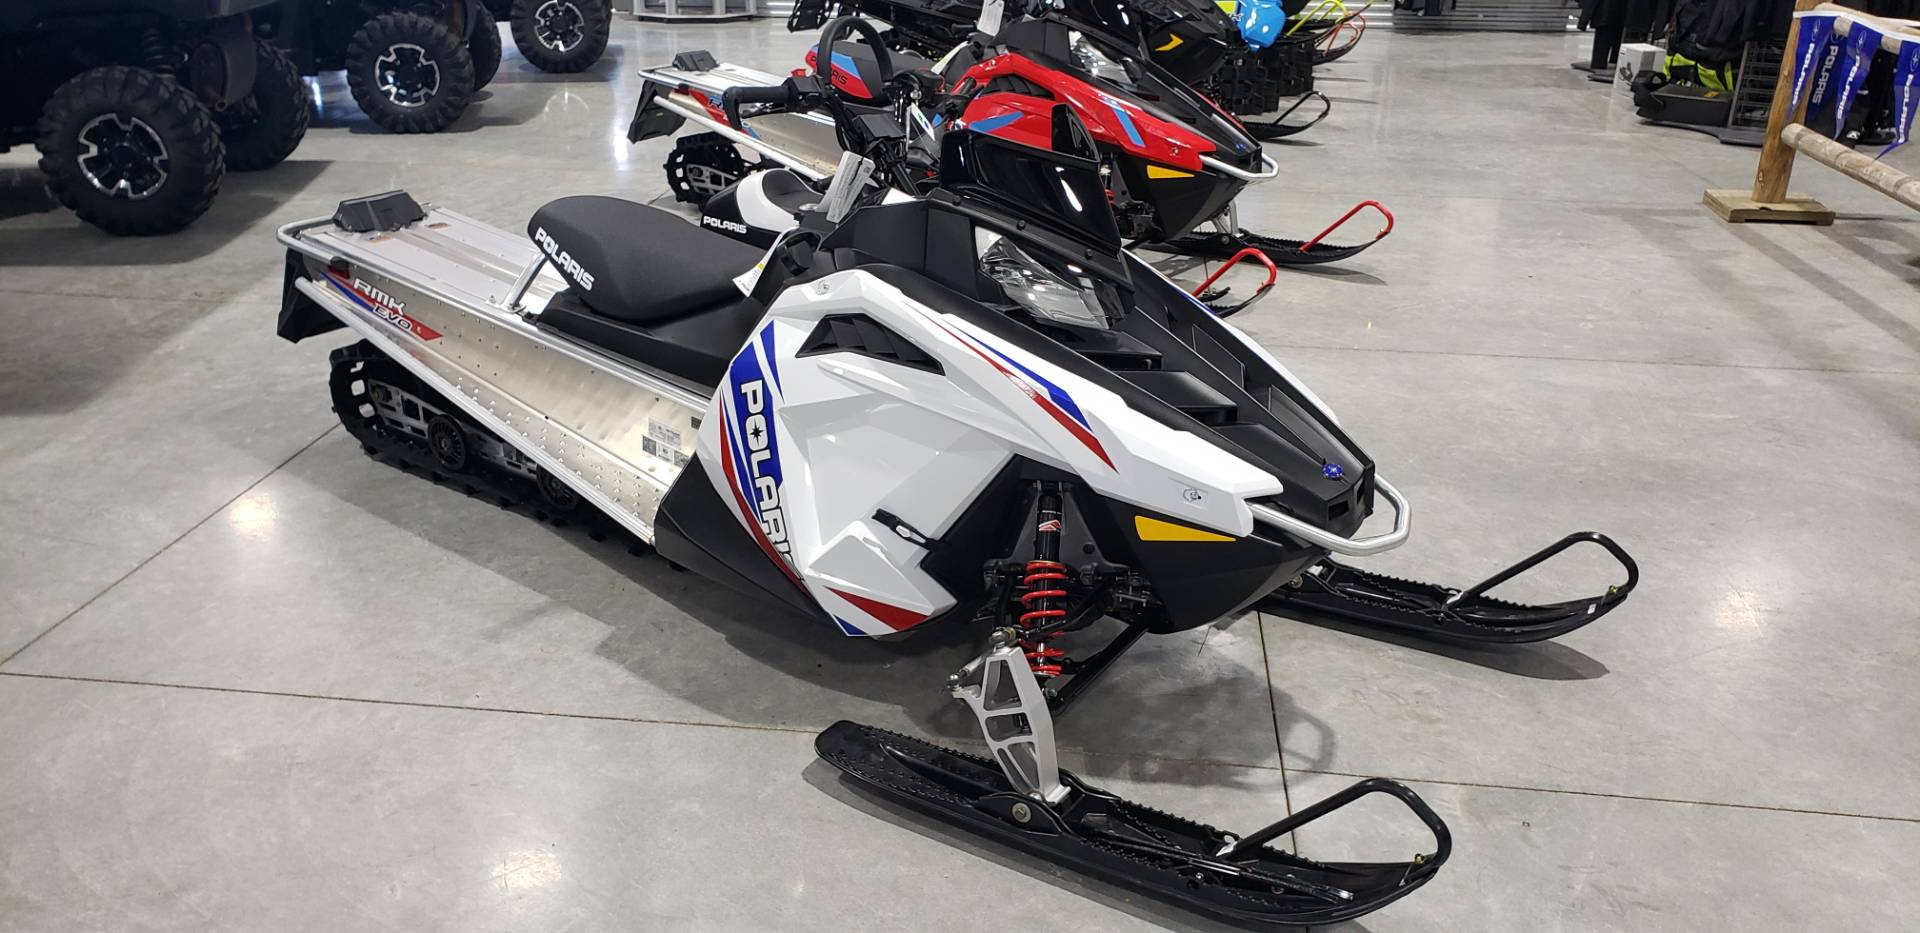 2021 Polaris 550 RMK EVO 144 ES in Rapid City, South Dakota - Photo 1